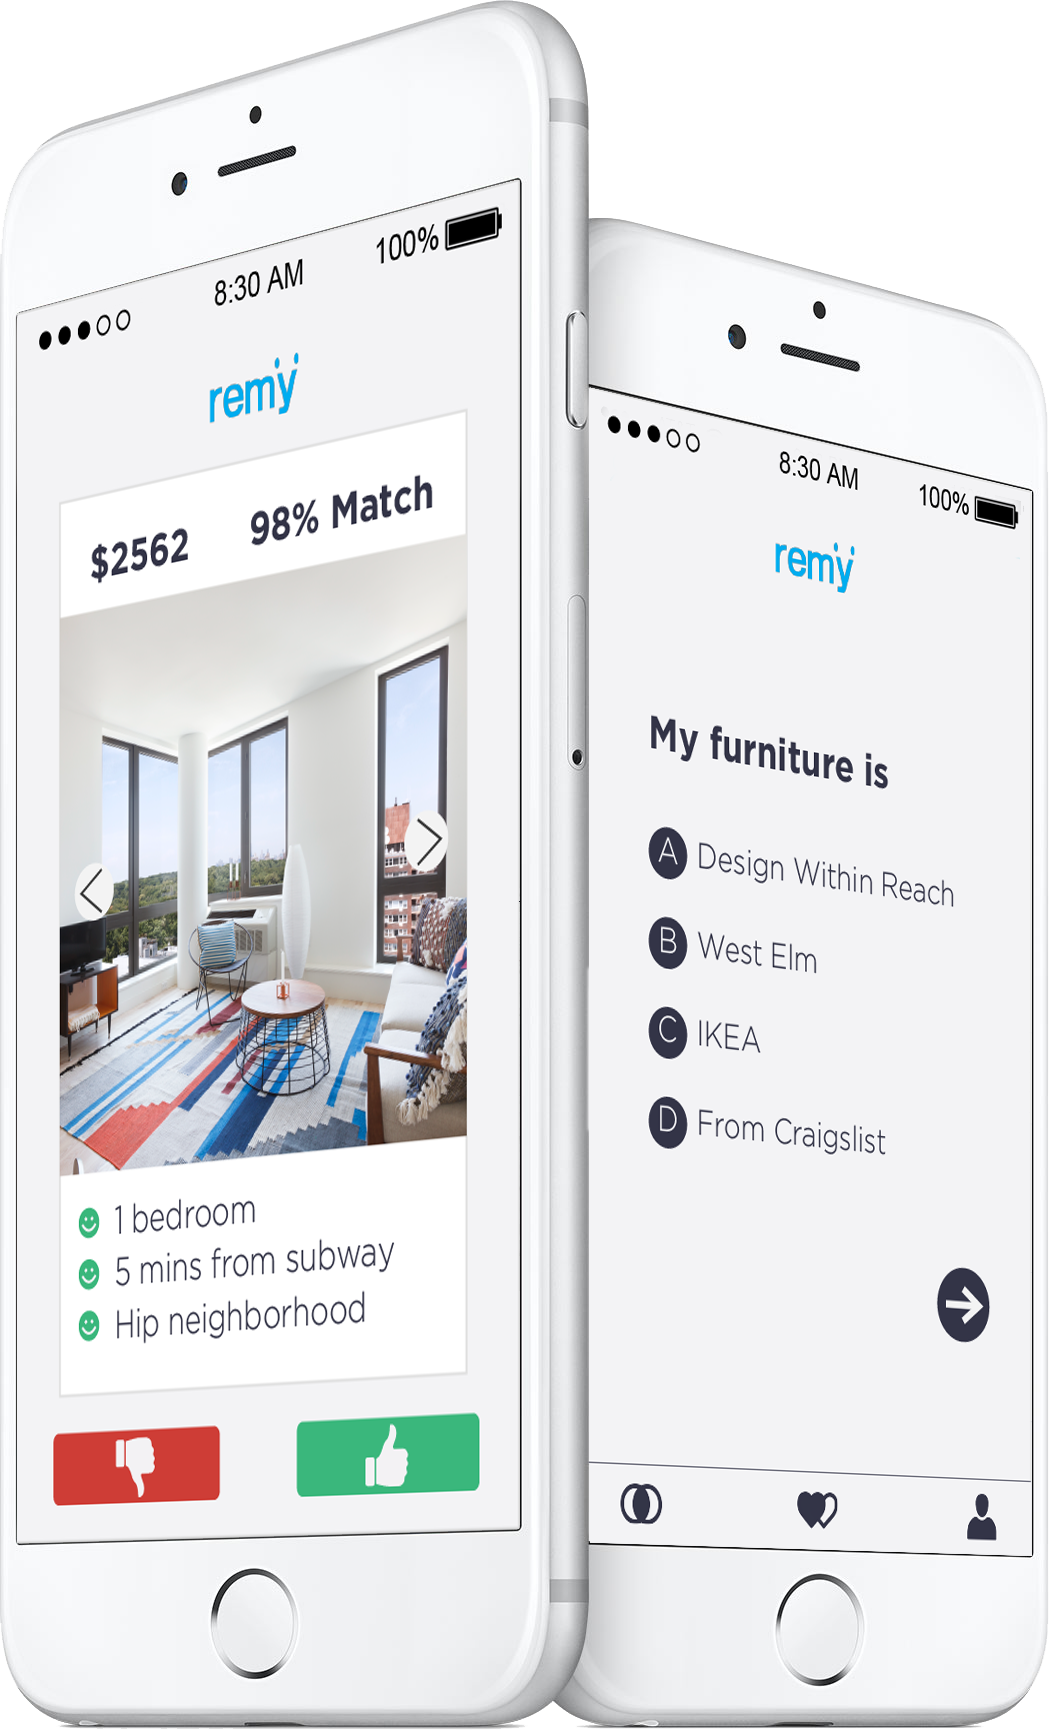 REMY apartment search interface